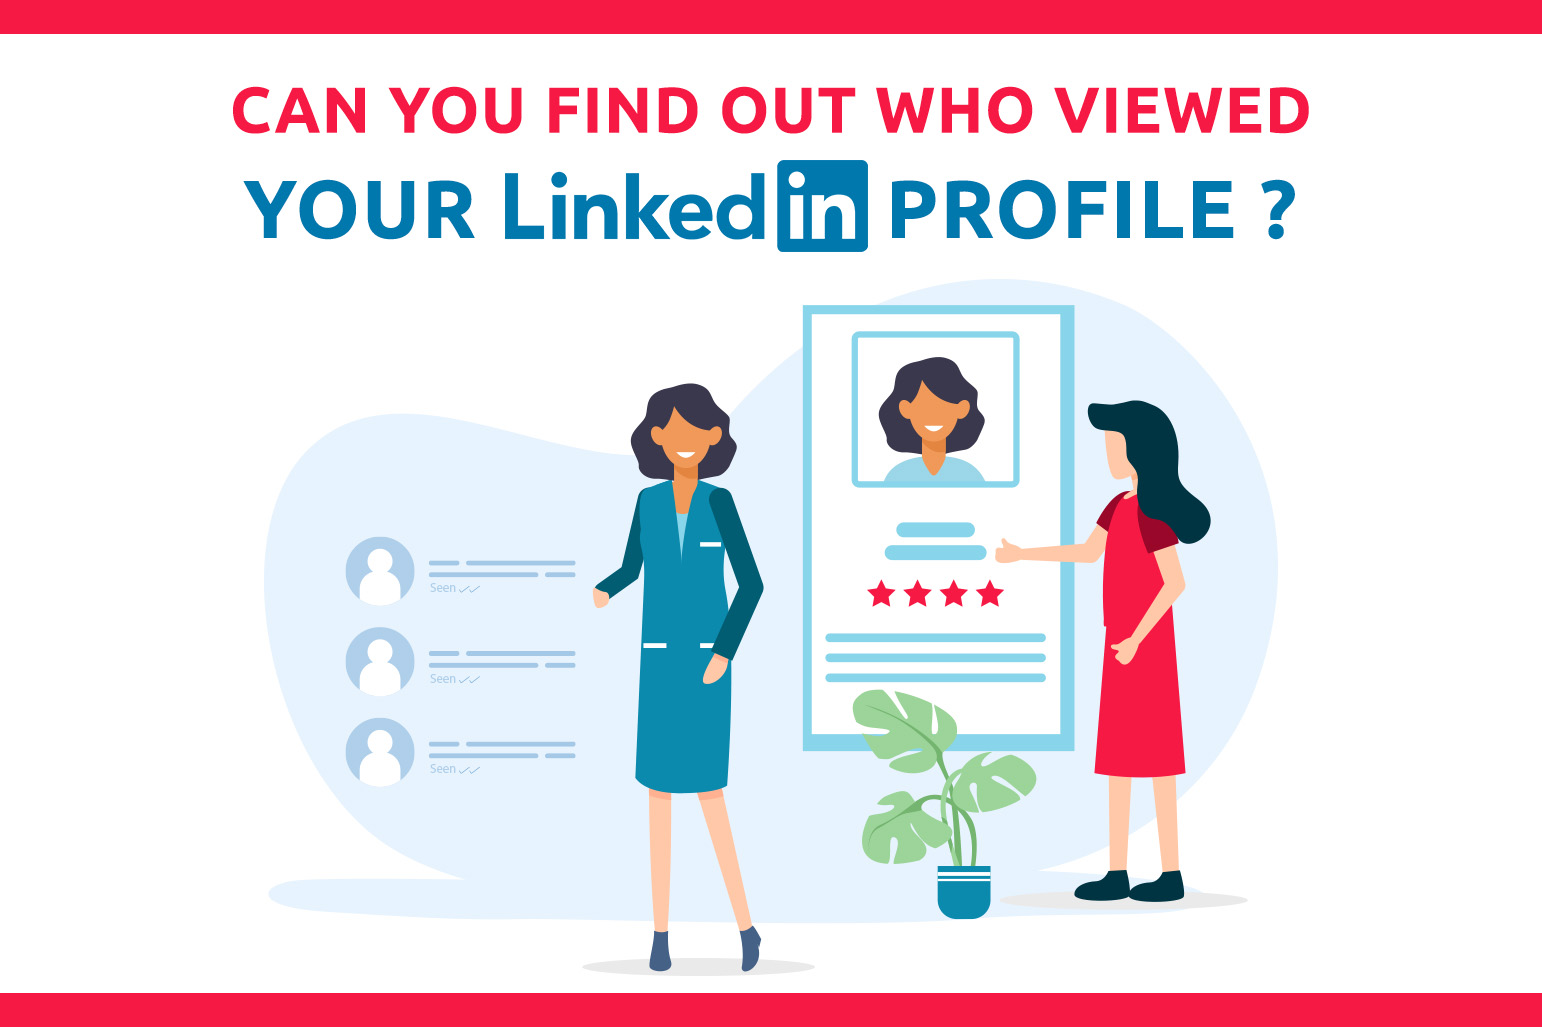 Can You Find Out Who Viewed Your LinkedIn Profile?